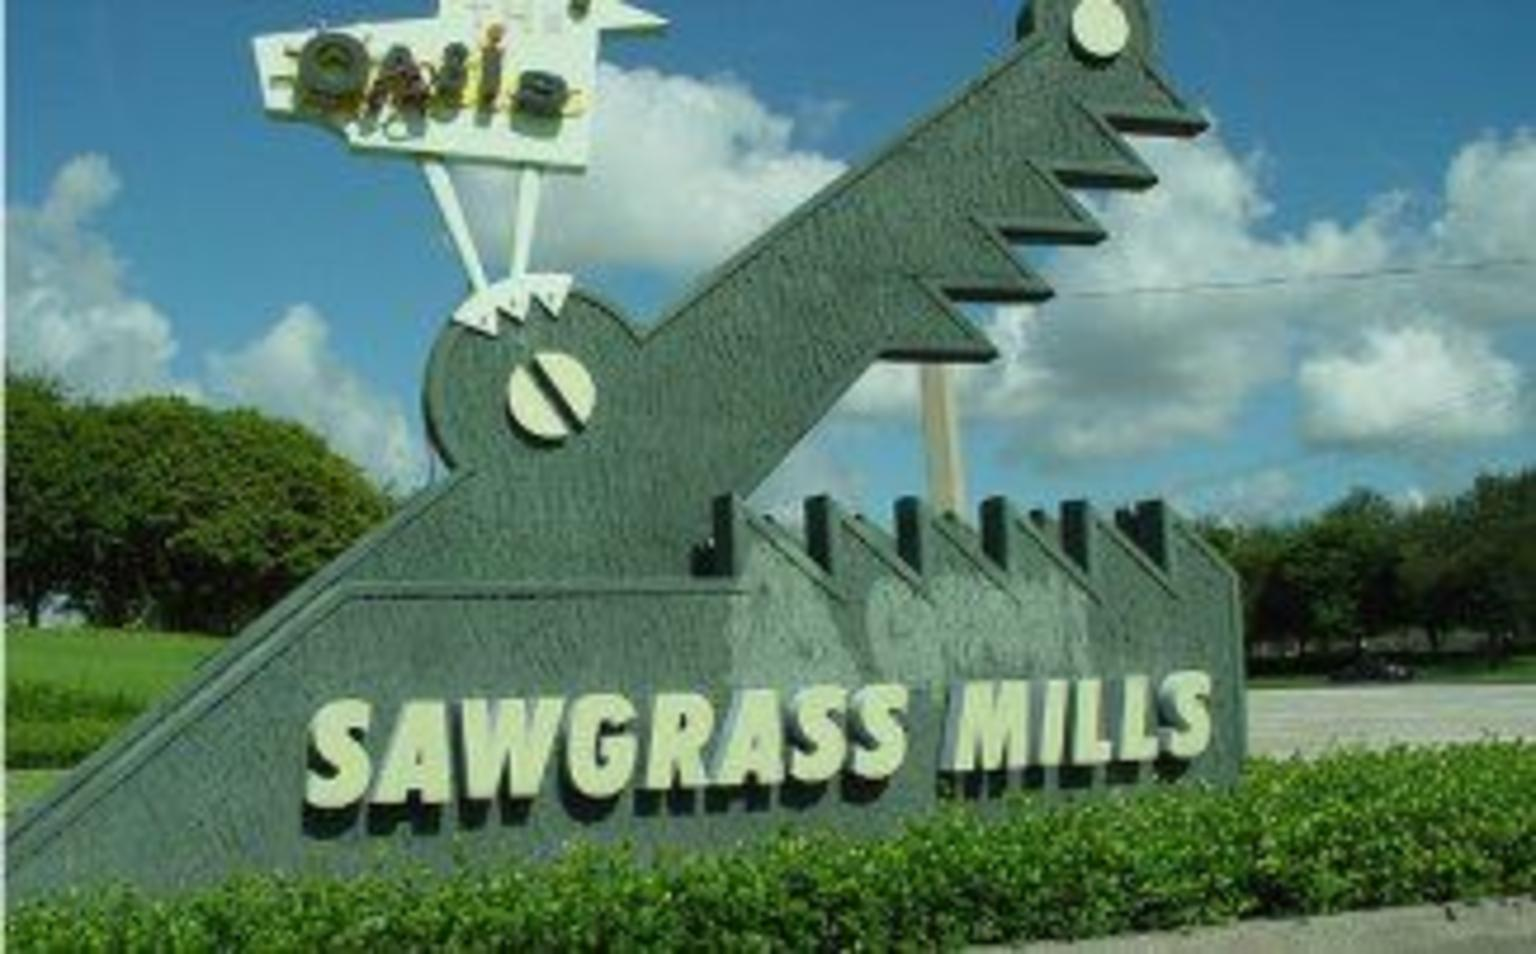 MAIS FOTOS, Transporte de ida e volta do shopping center Sawgrass Mills saindo de Miami